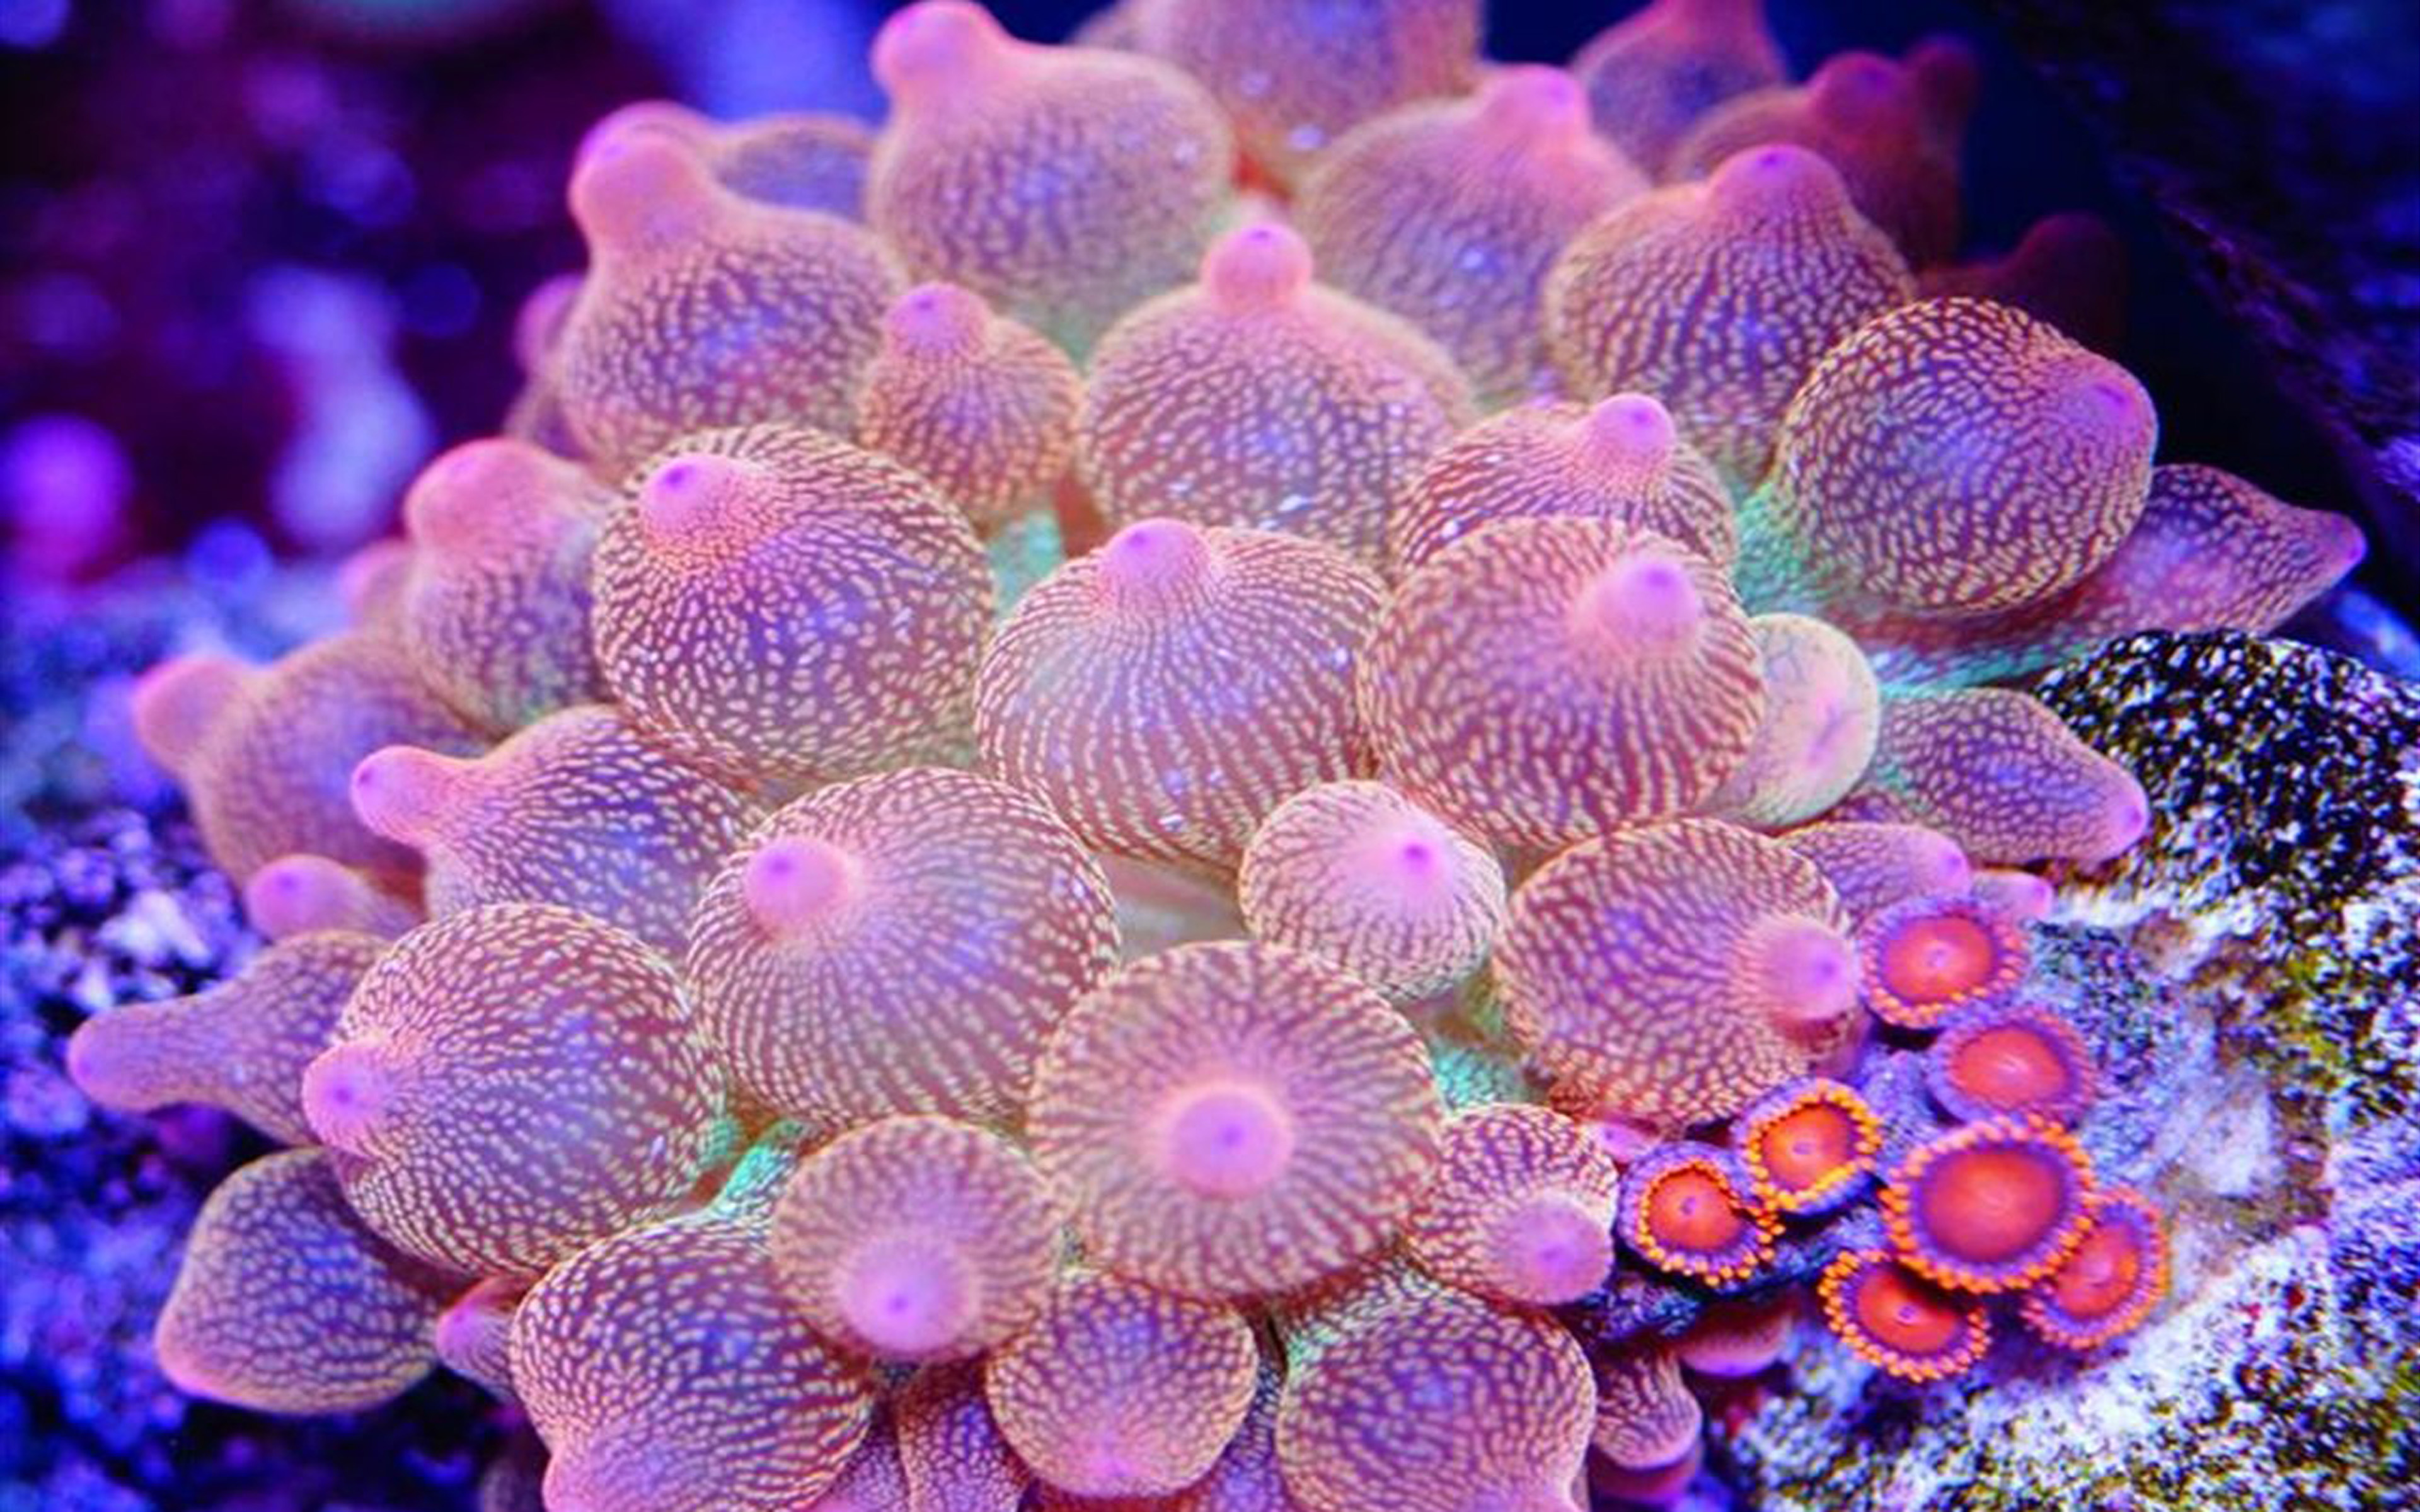 Iphone 5 Clown Fish Wallpaper Entacmaea Quadricolor Commonly Called Bubble Tip Anemone